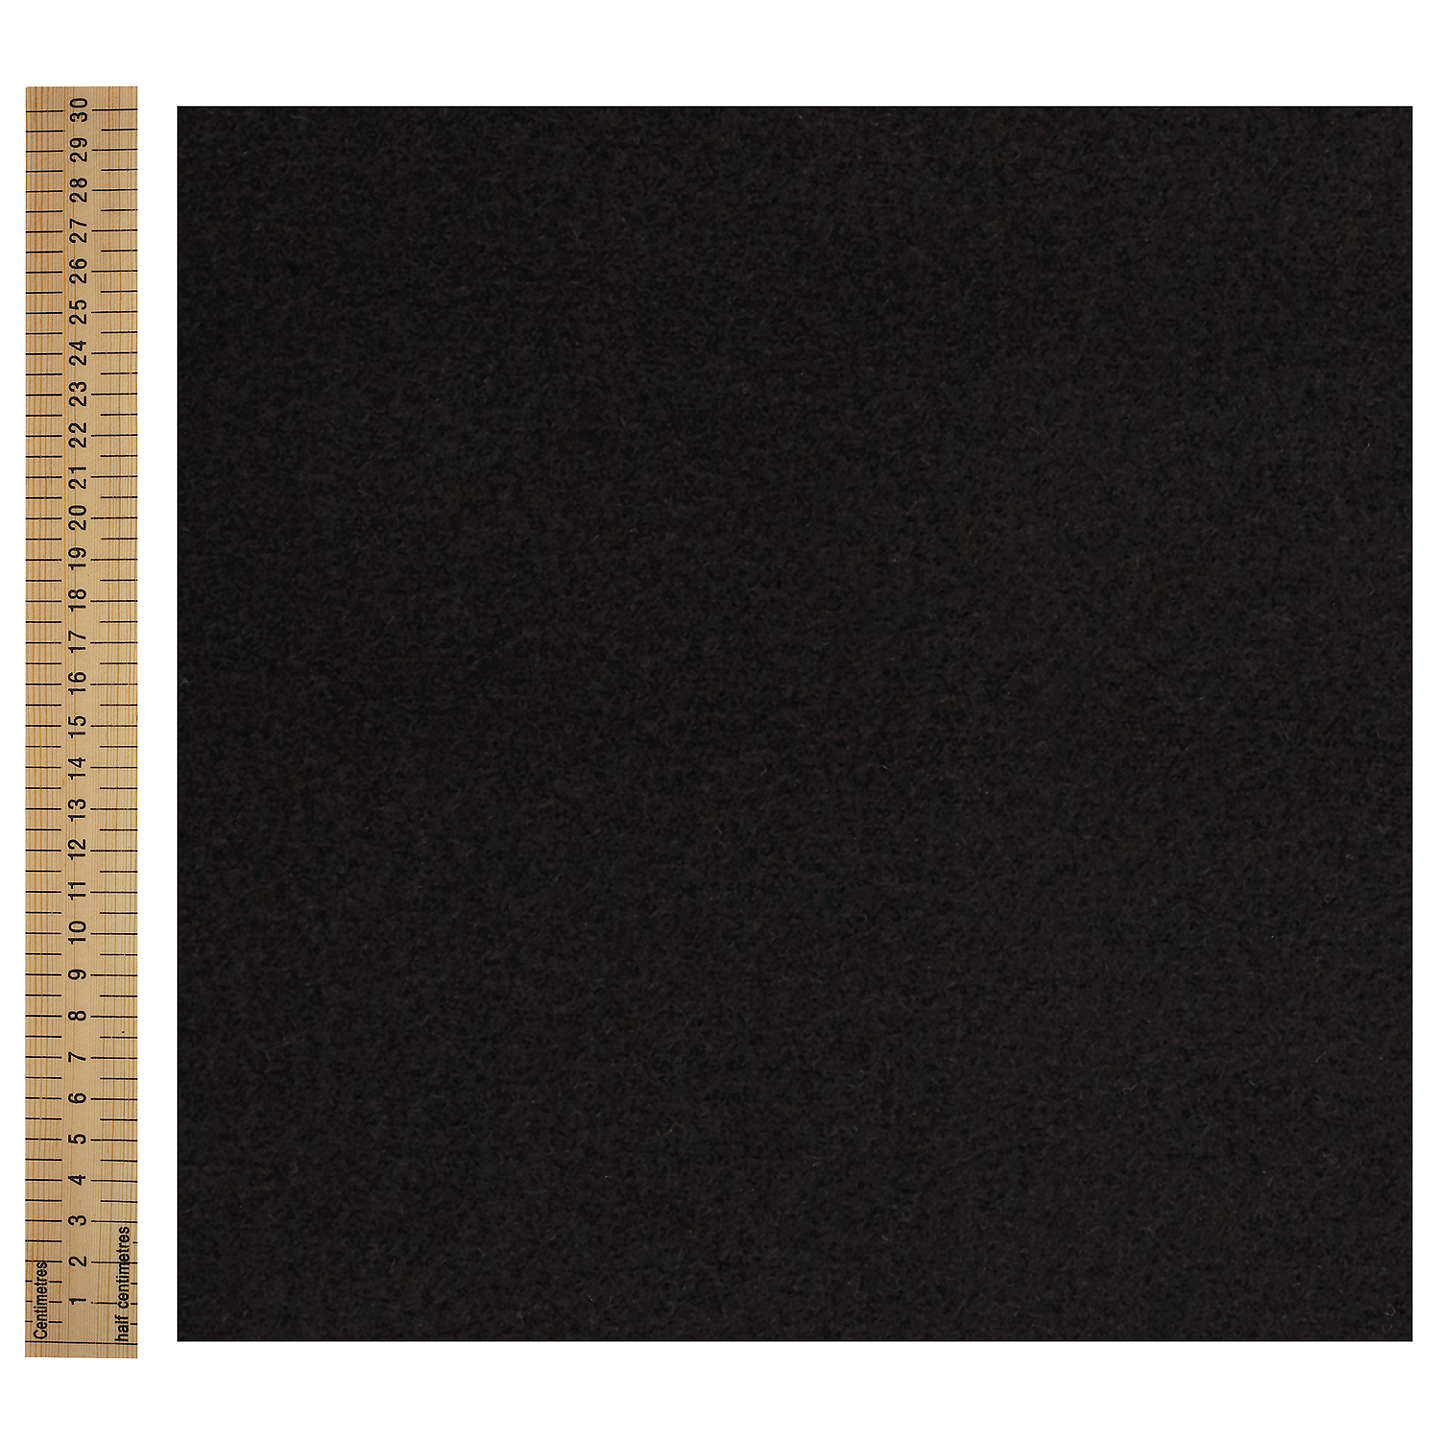 BuyCoat Material Fabric, Black Online at johnlewis.com